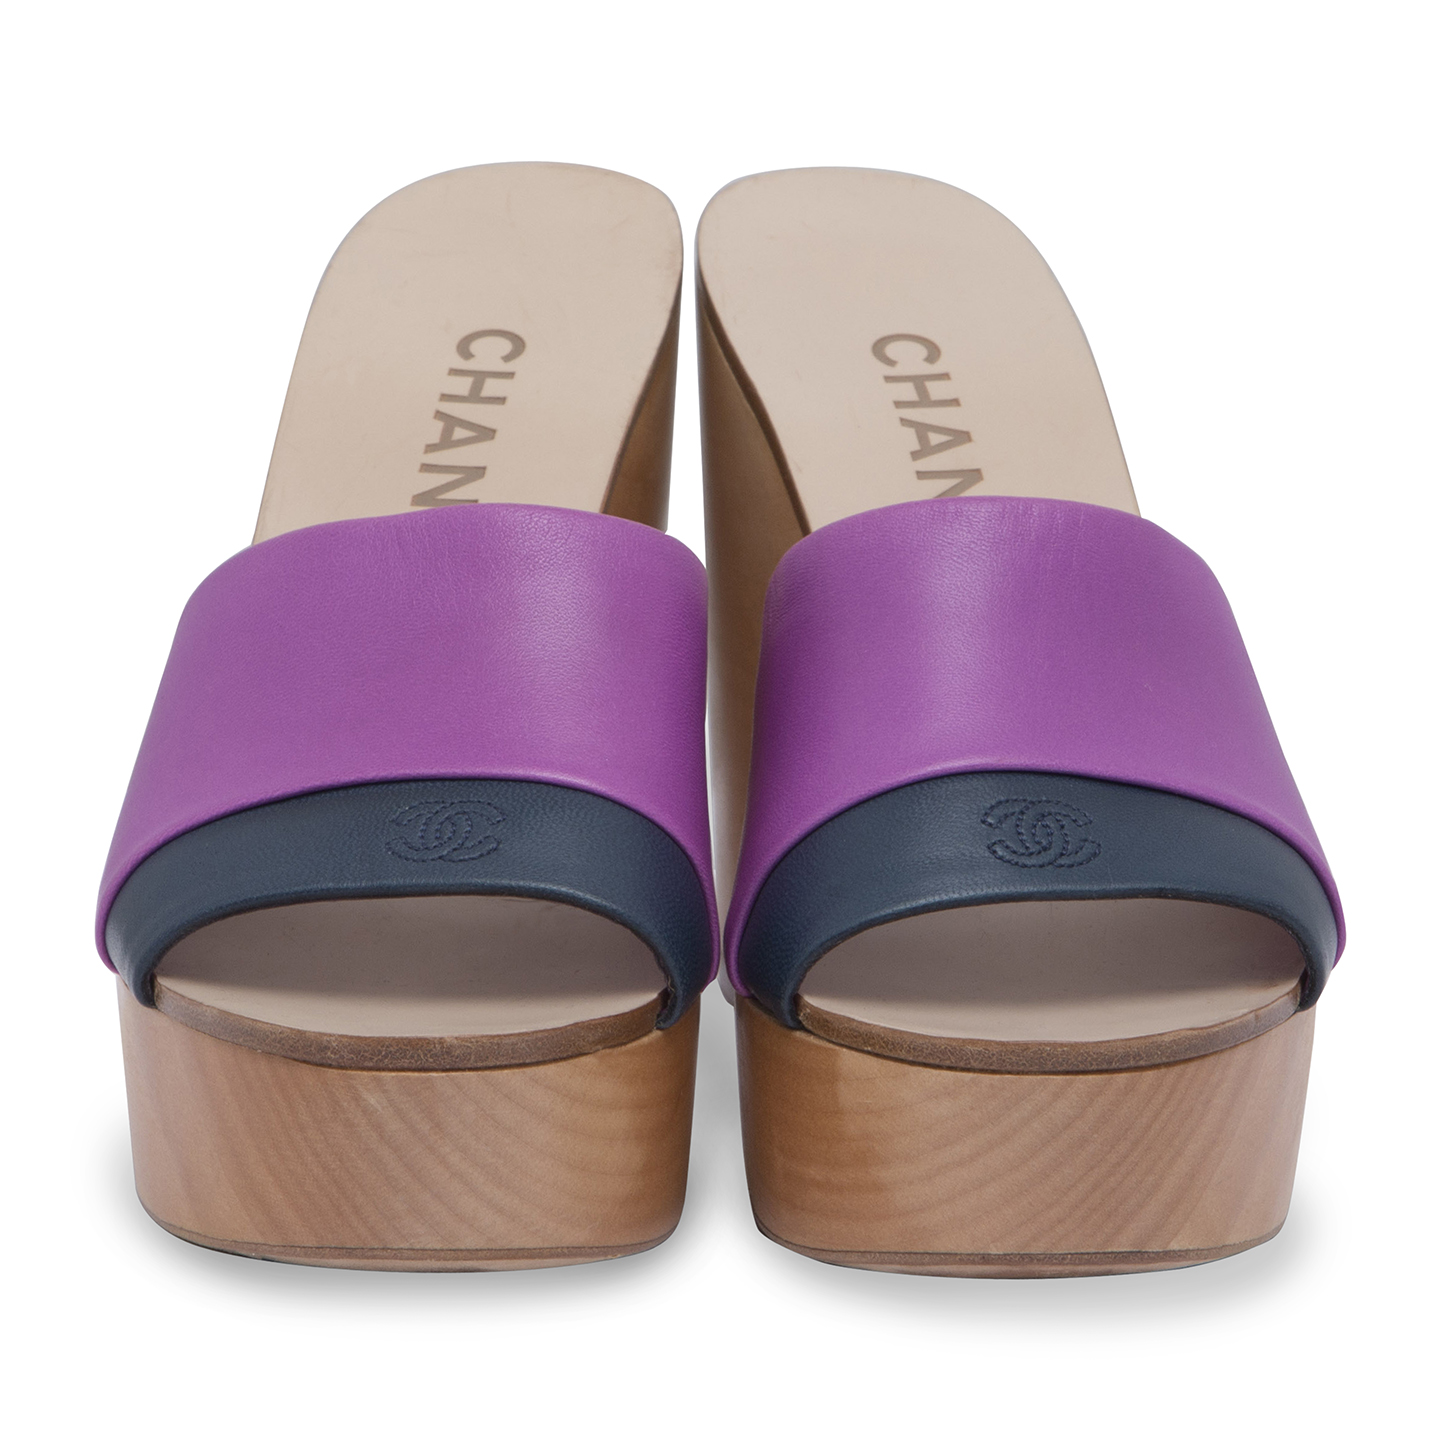 32d9bea2c186 Chanel Leather And Wooden Clogs Size 35 - LabelCentric